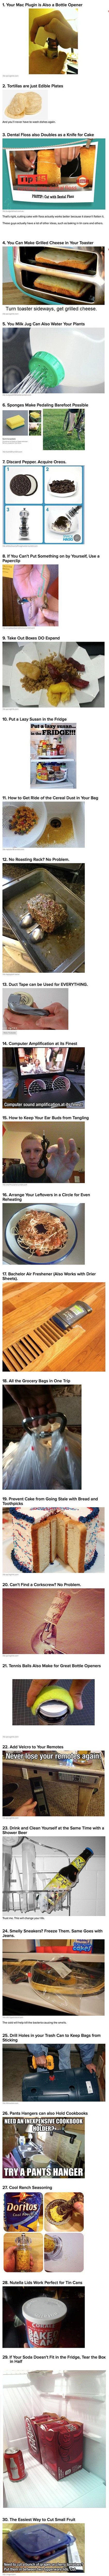 We have rounded up some awesome life hacks that geeky bachelors would love.